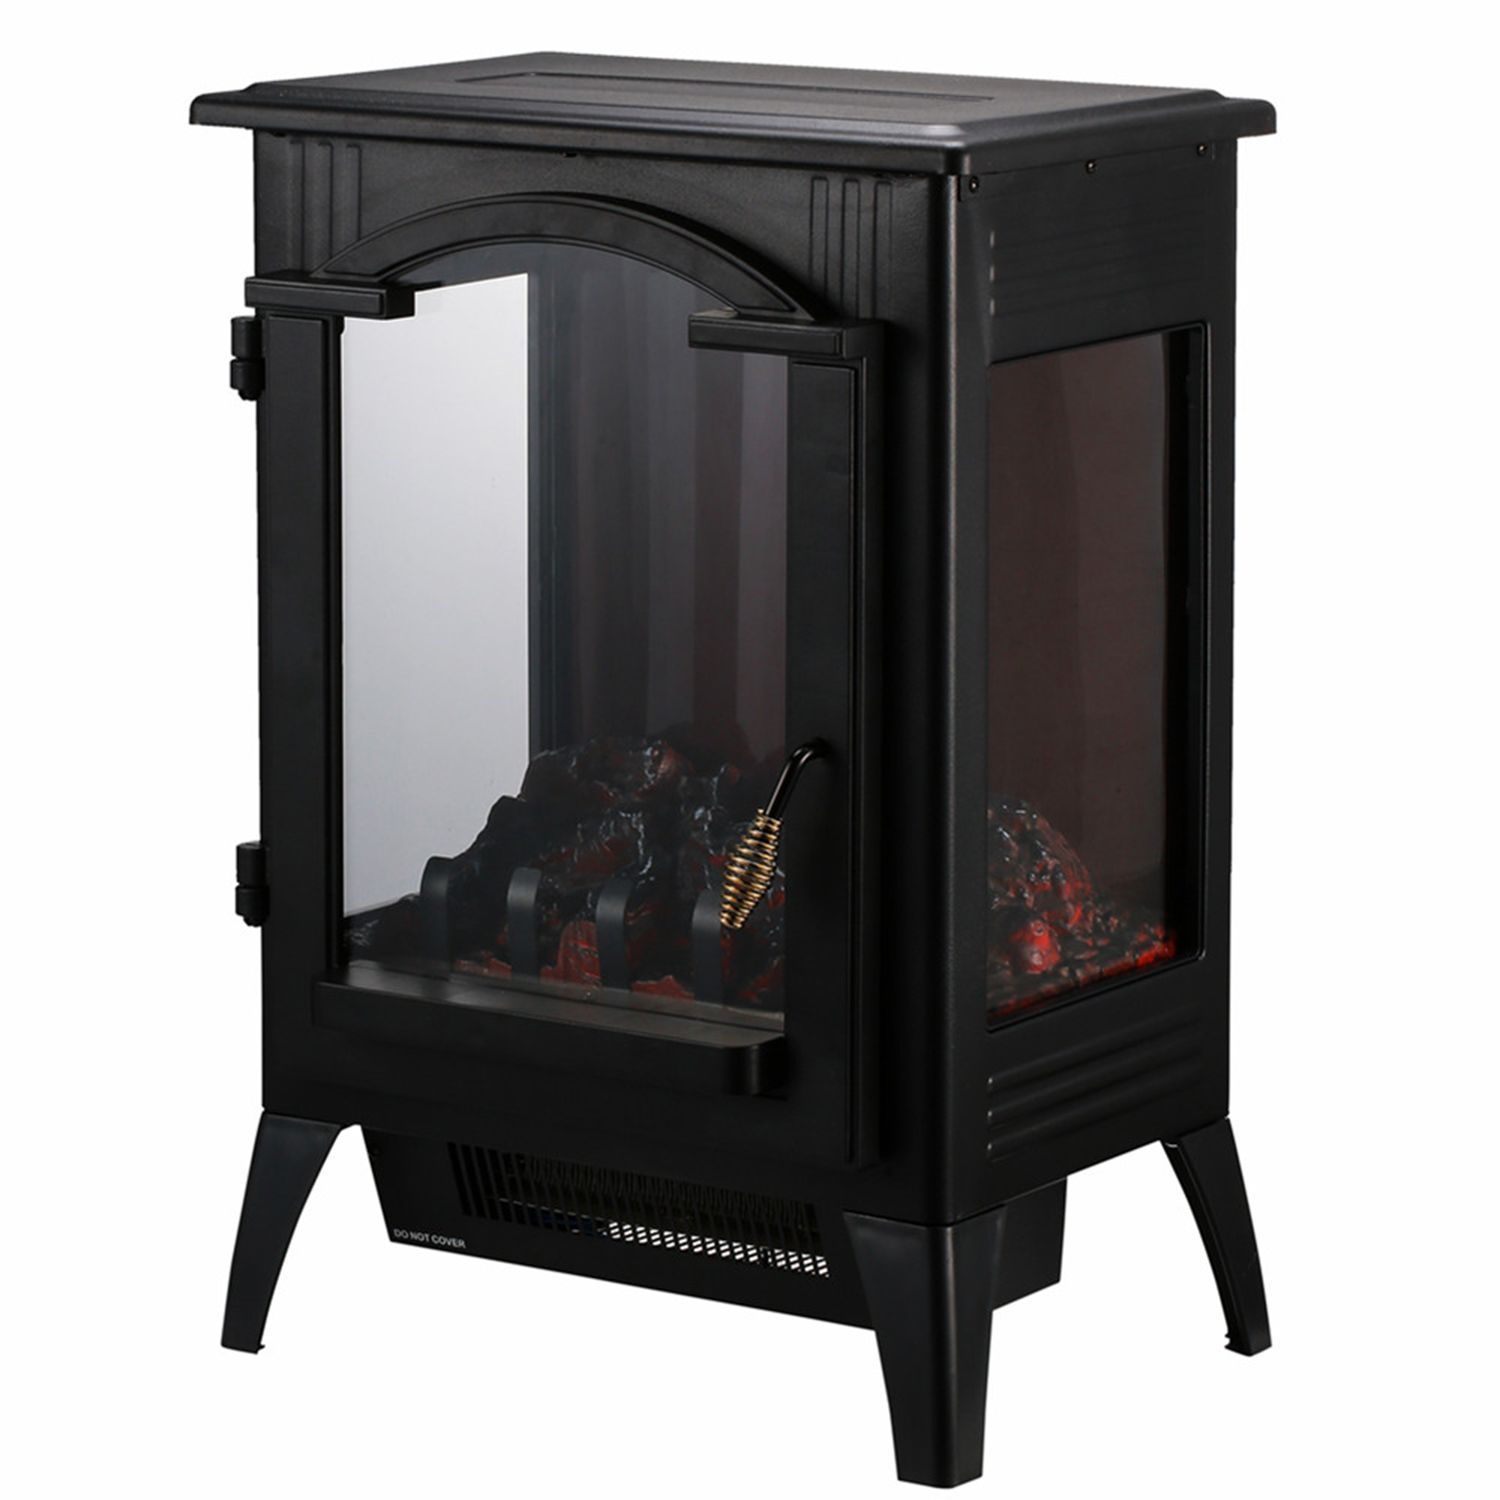 Portable Indoor Home Compact Electric Wood Stove Fireplace Heater With Thermostat For Office In 2020 Electric Wood Stove Wood Stove Wood Stove Fireplace